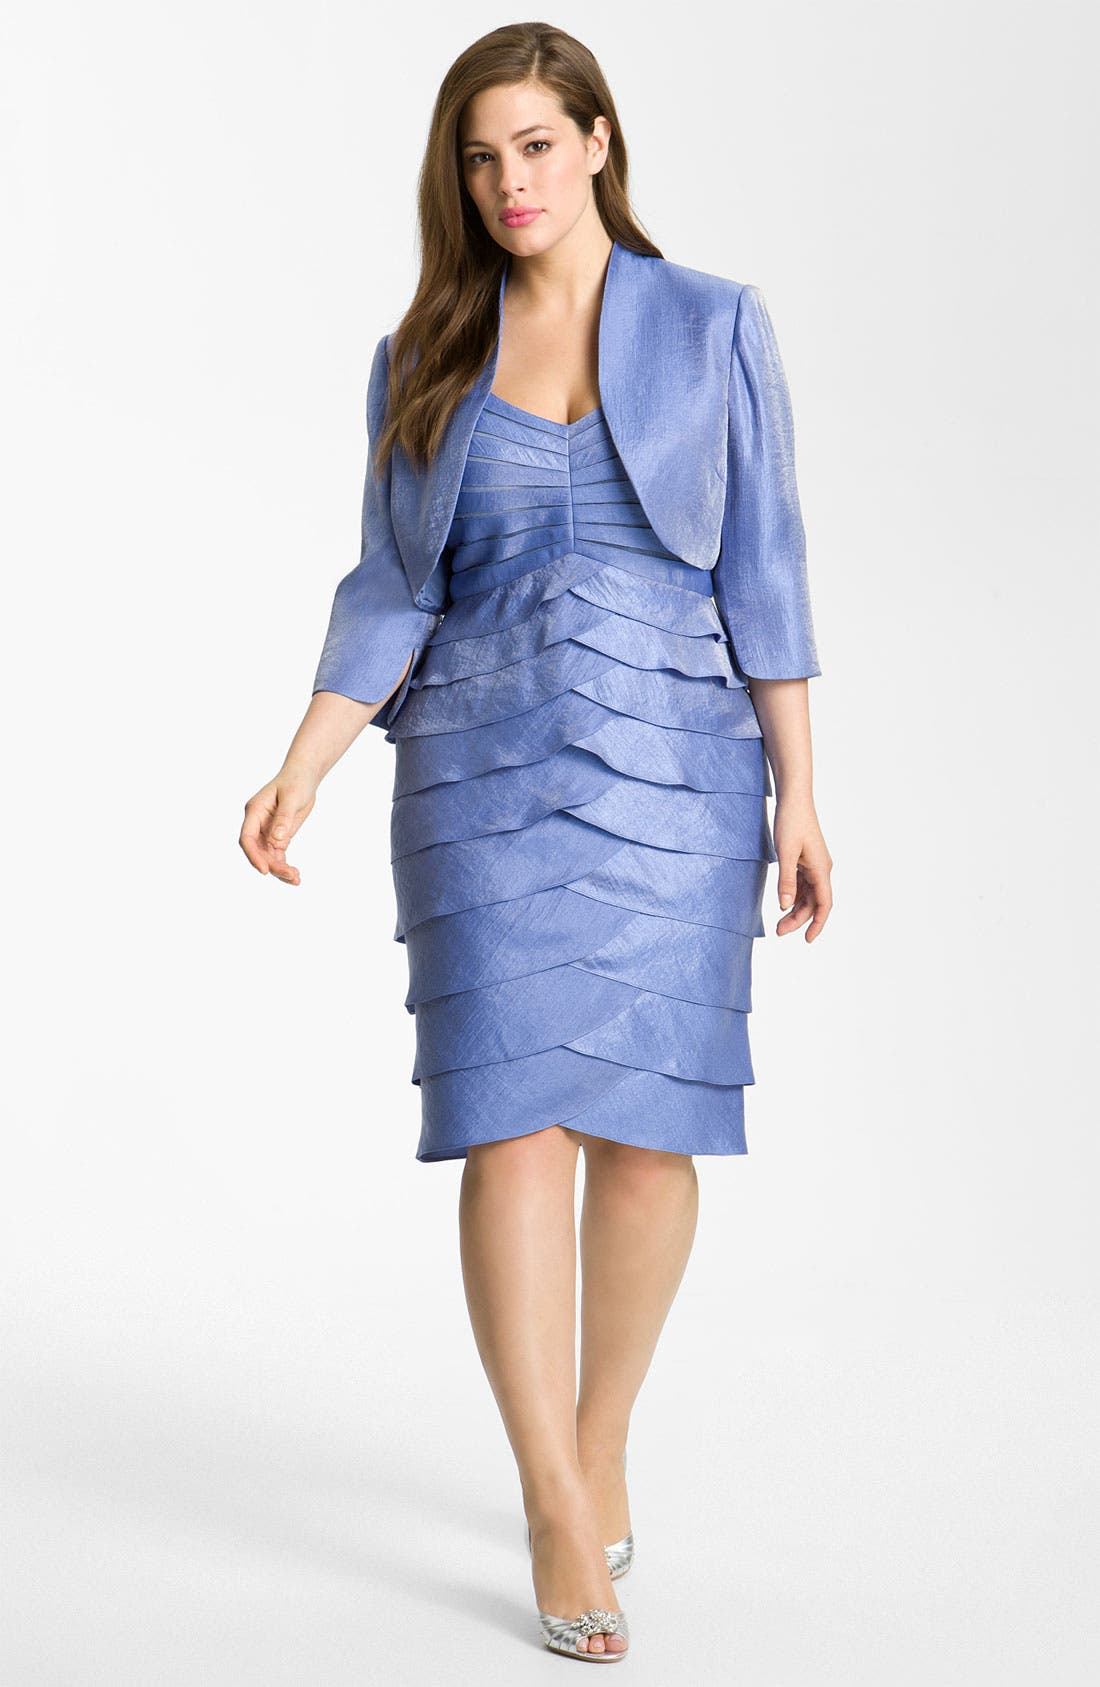 Alternate Image 1 Selected - Adrianna Papell Evening Shutter Pleat Dress with Bolero Jacket (Plus)